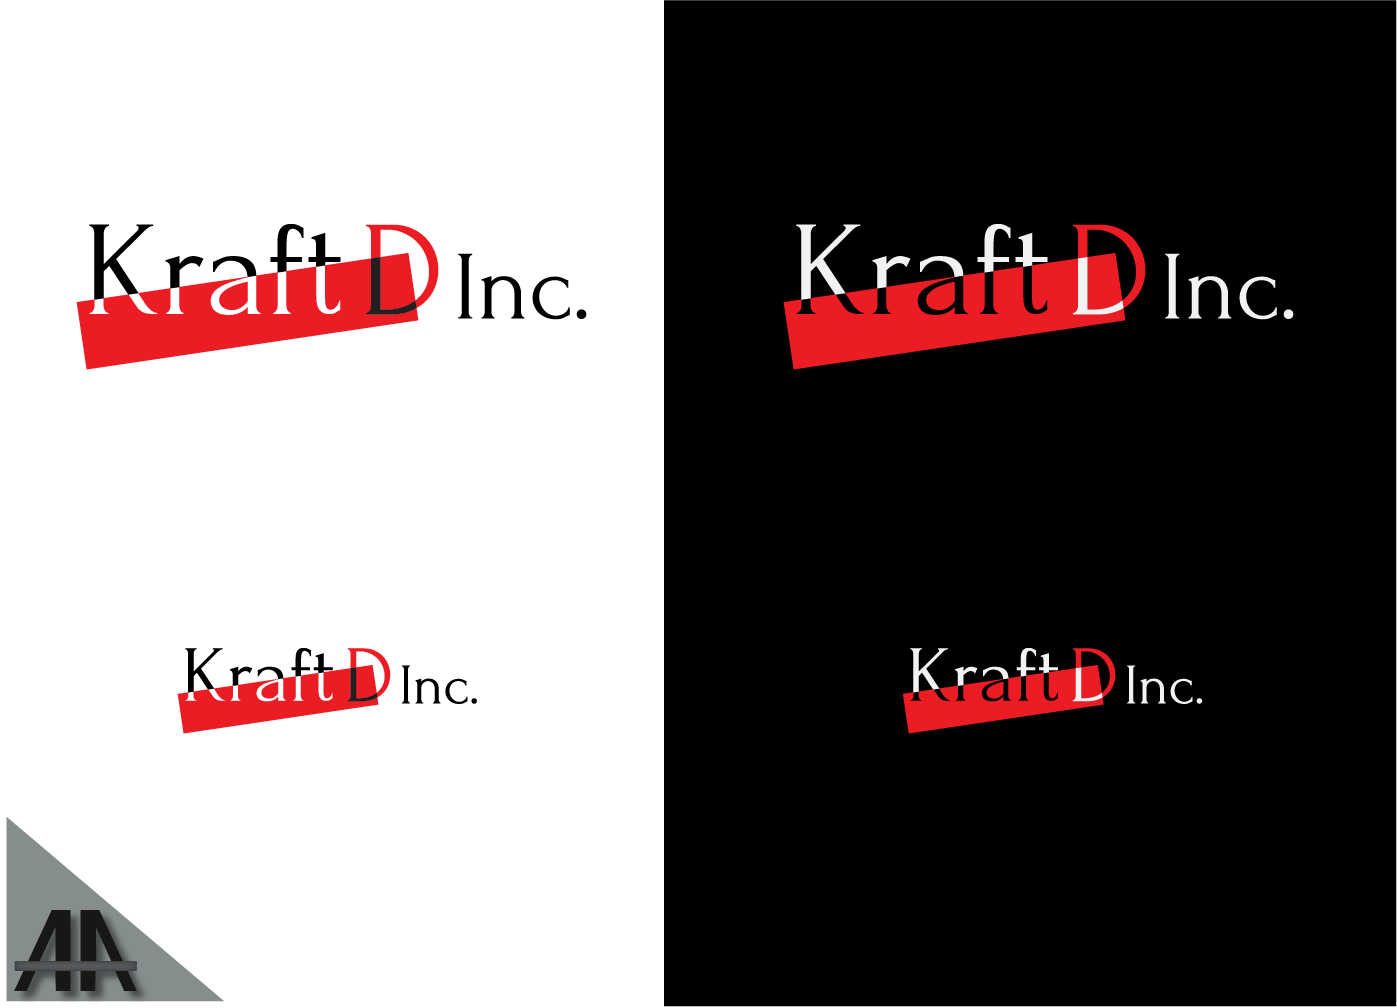 Logo Design by Thanasis Athanasopoulos - Entry No. 327 in the Logo Design Contest Unique Logo Design Wanted for Kraft D Inc.